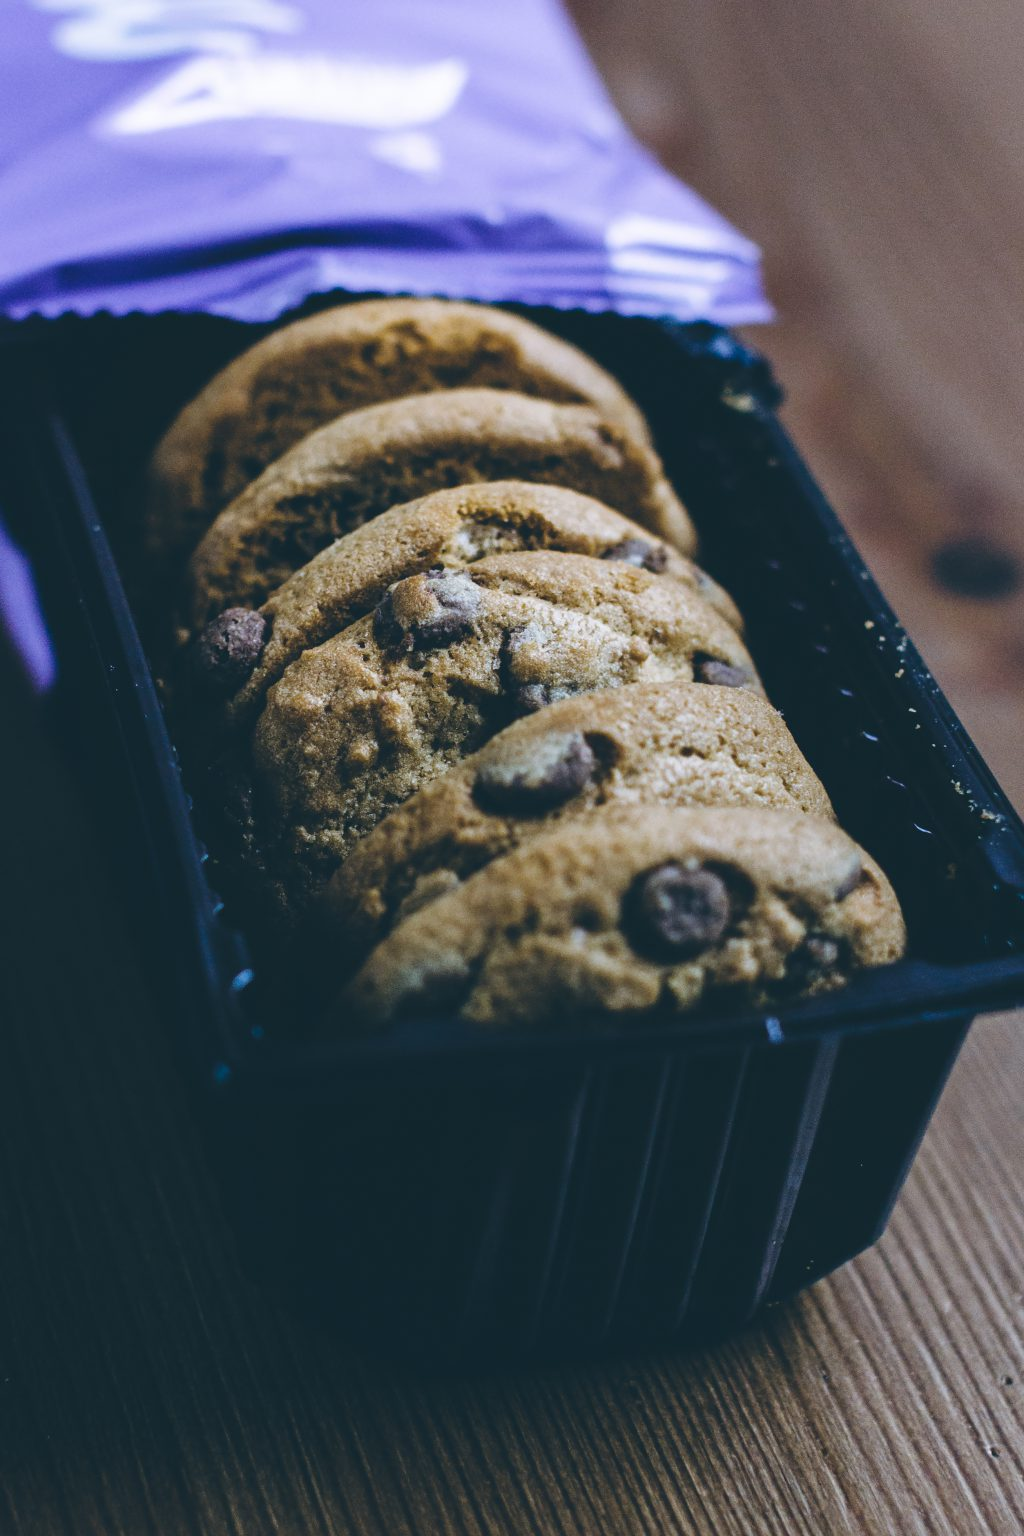 Chocolate chip cookies in a box - free stock photo